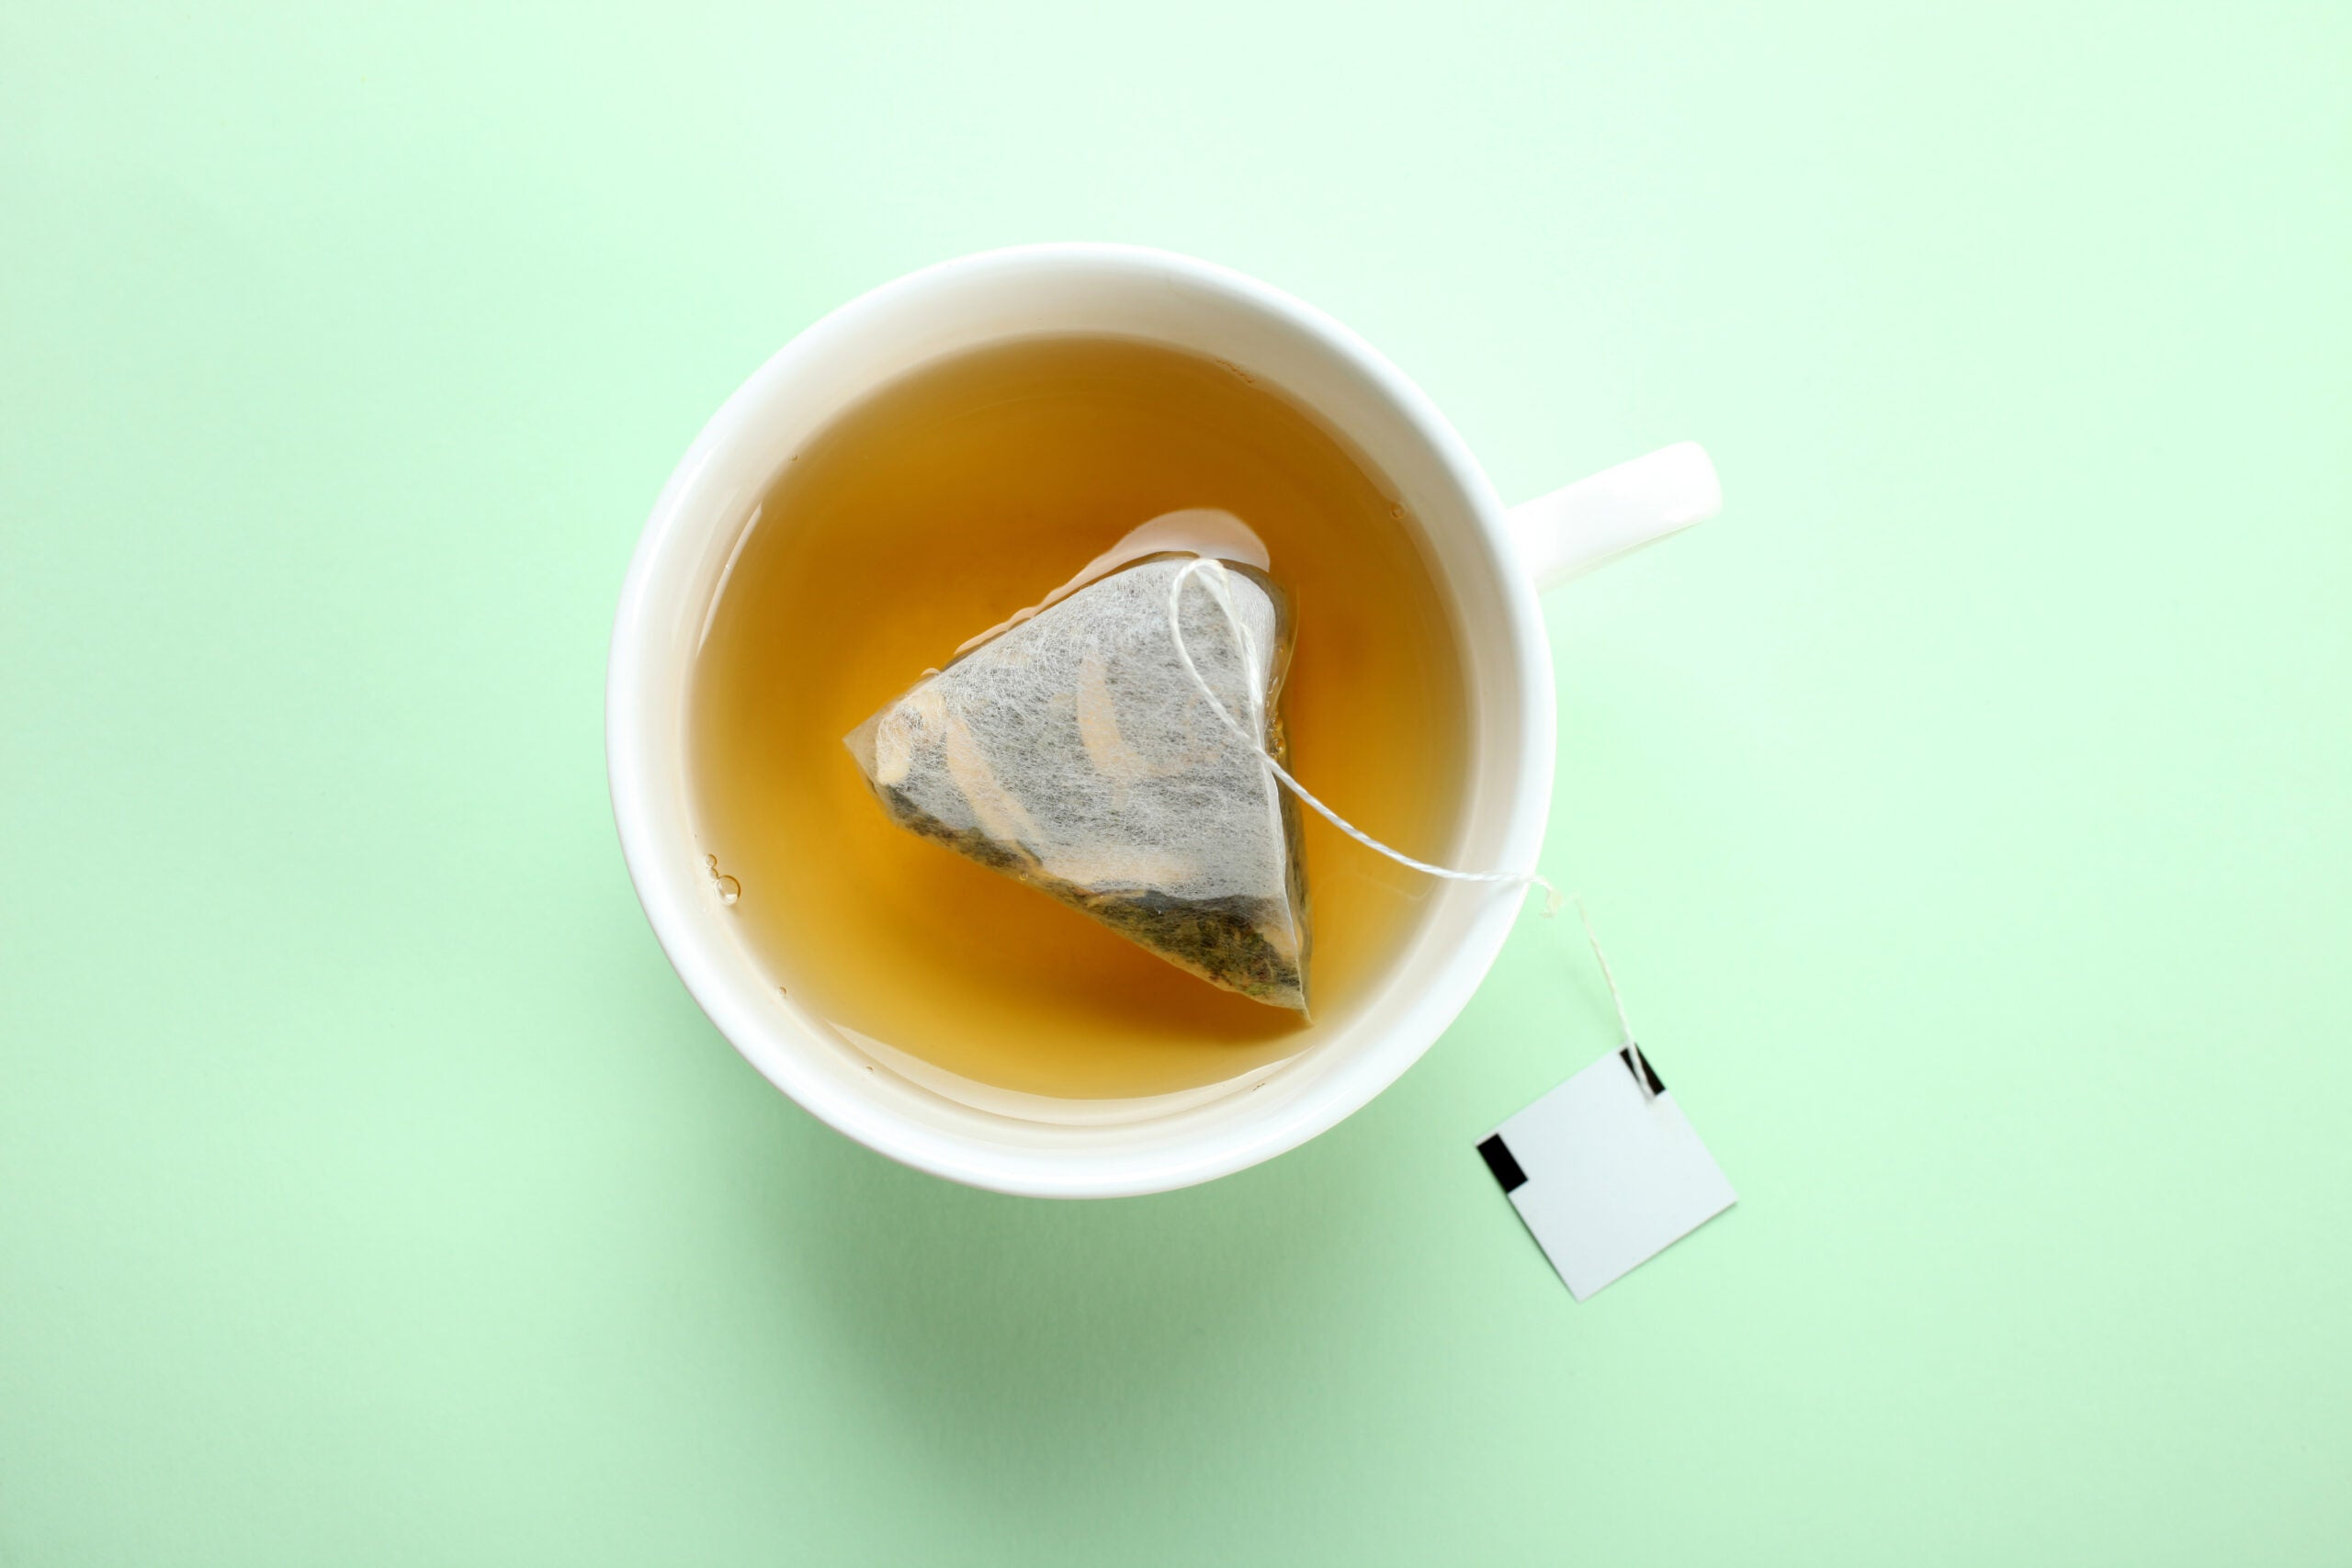 Mint tea bag in a cup on a mint pastel background. Top view.